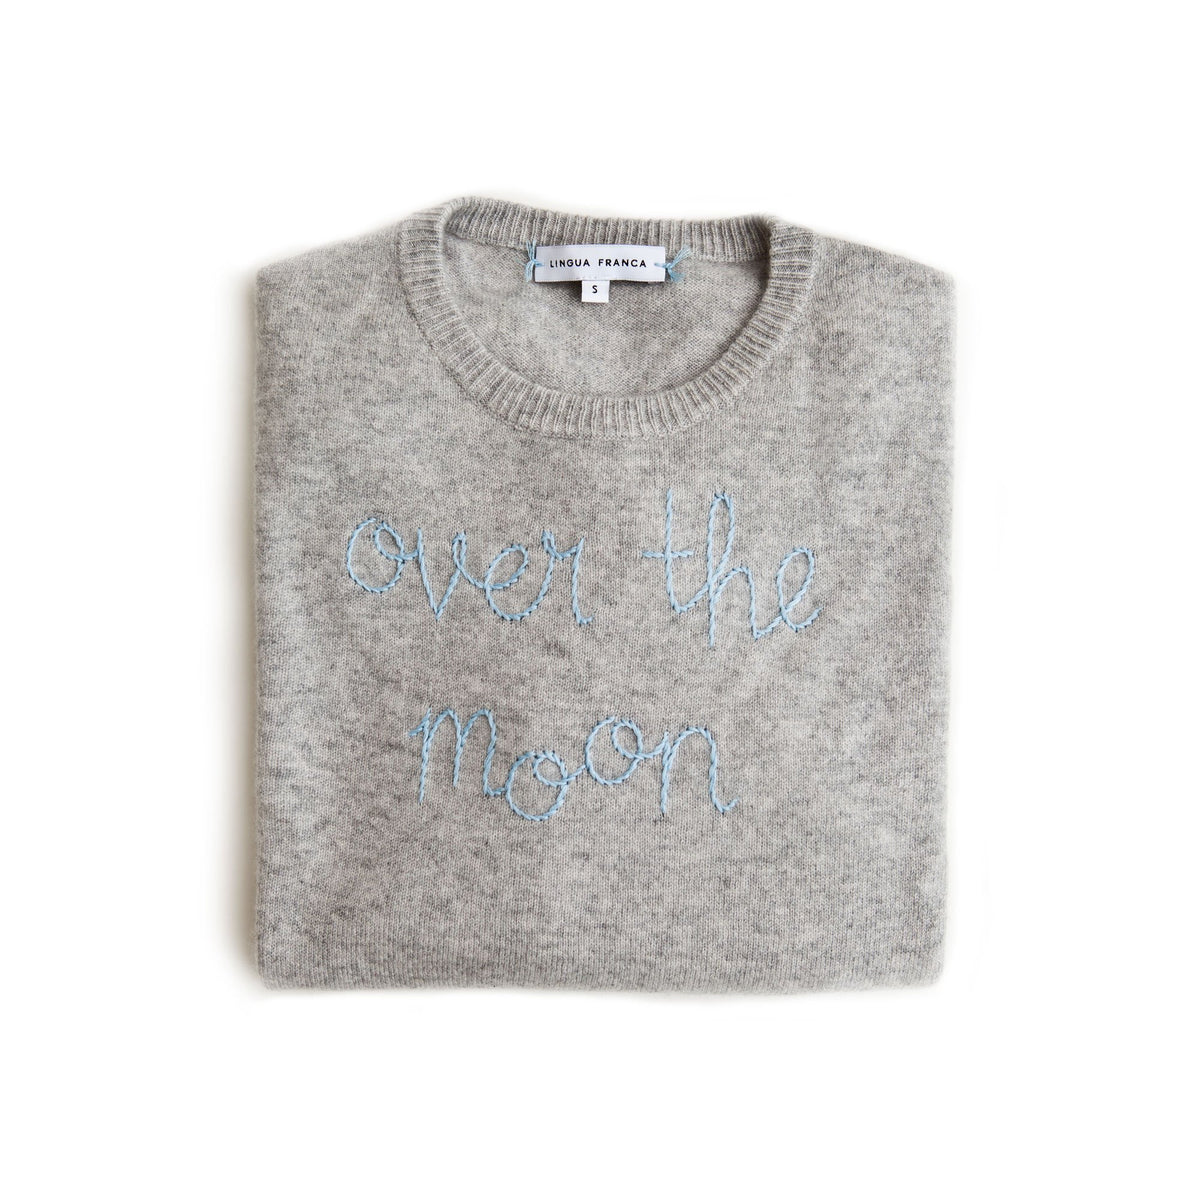 Over The Moon x Lingua Franca Cashmere Sweater